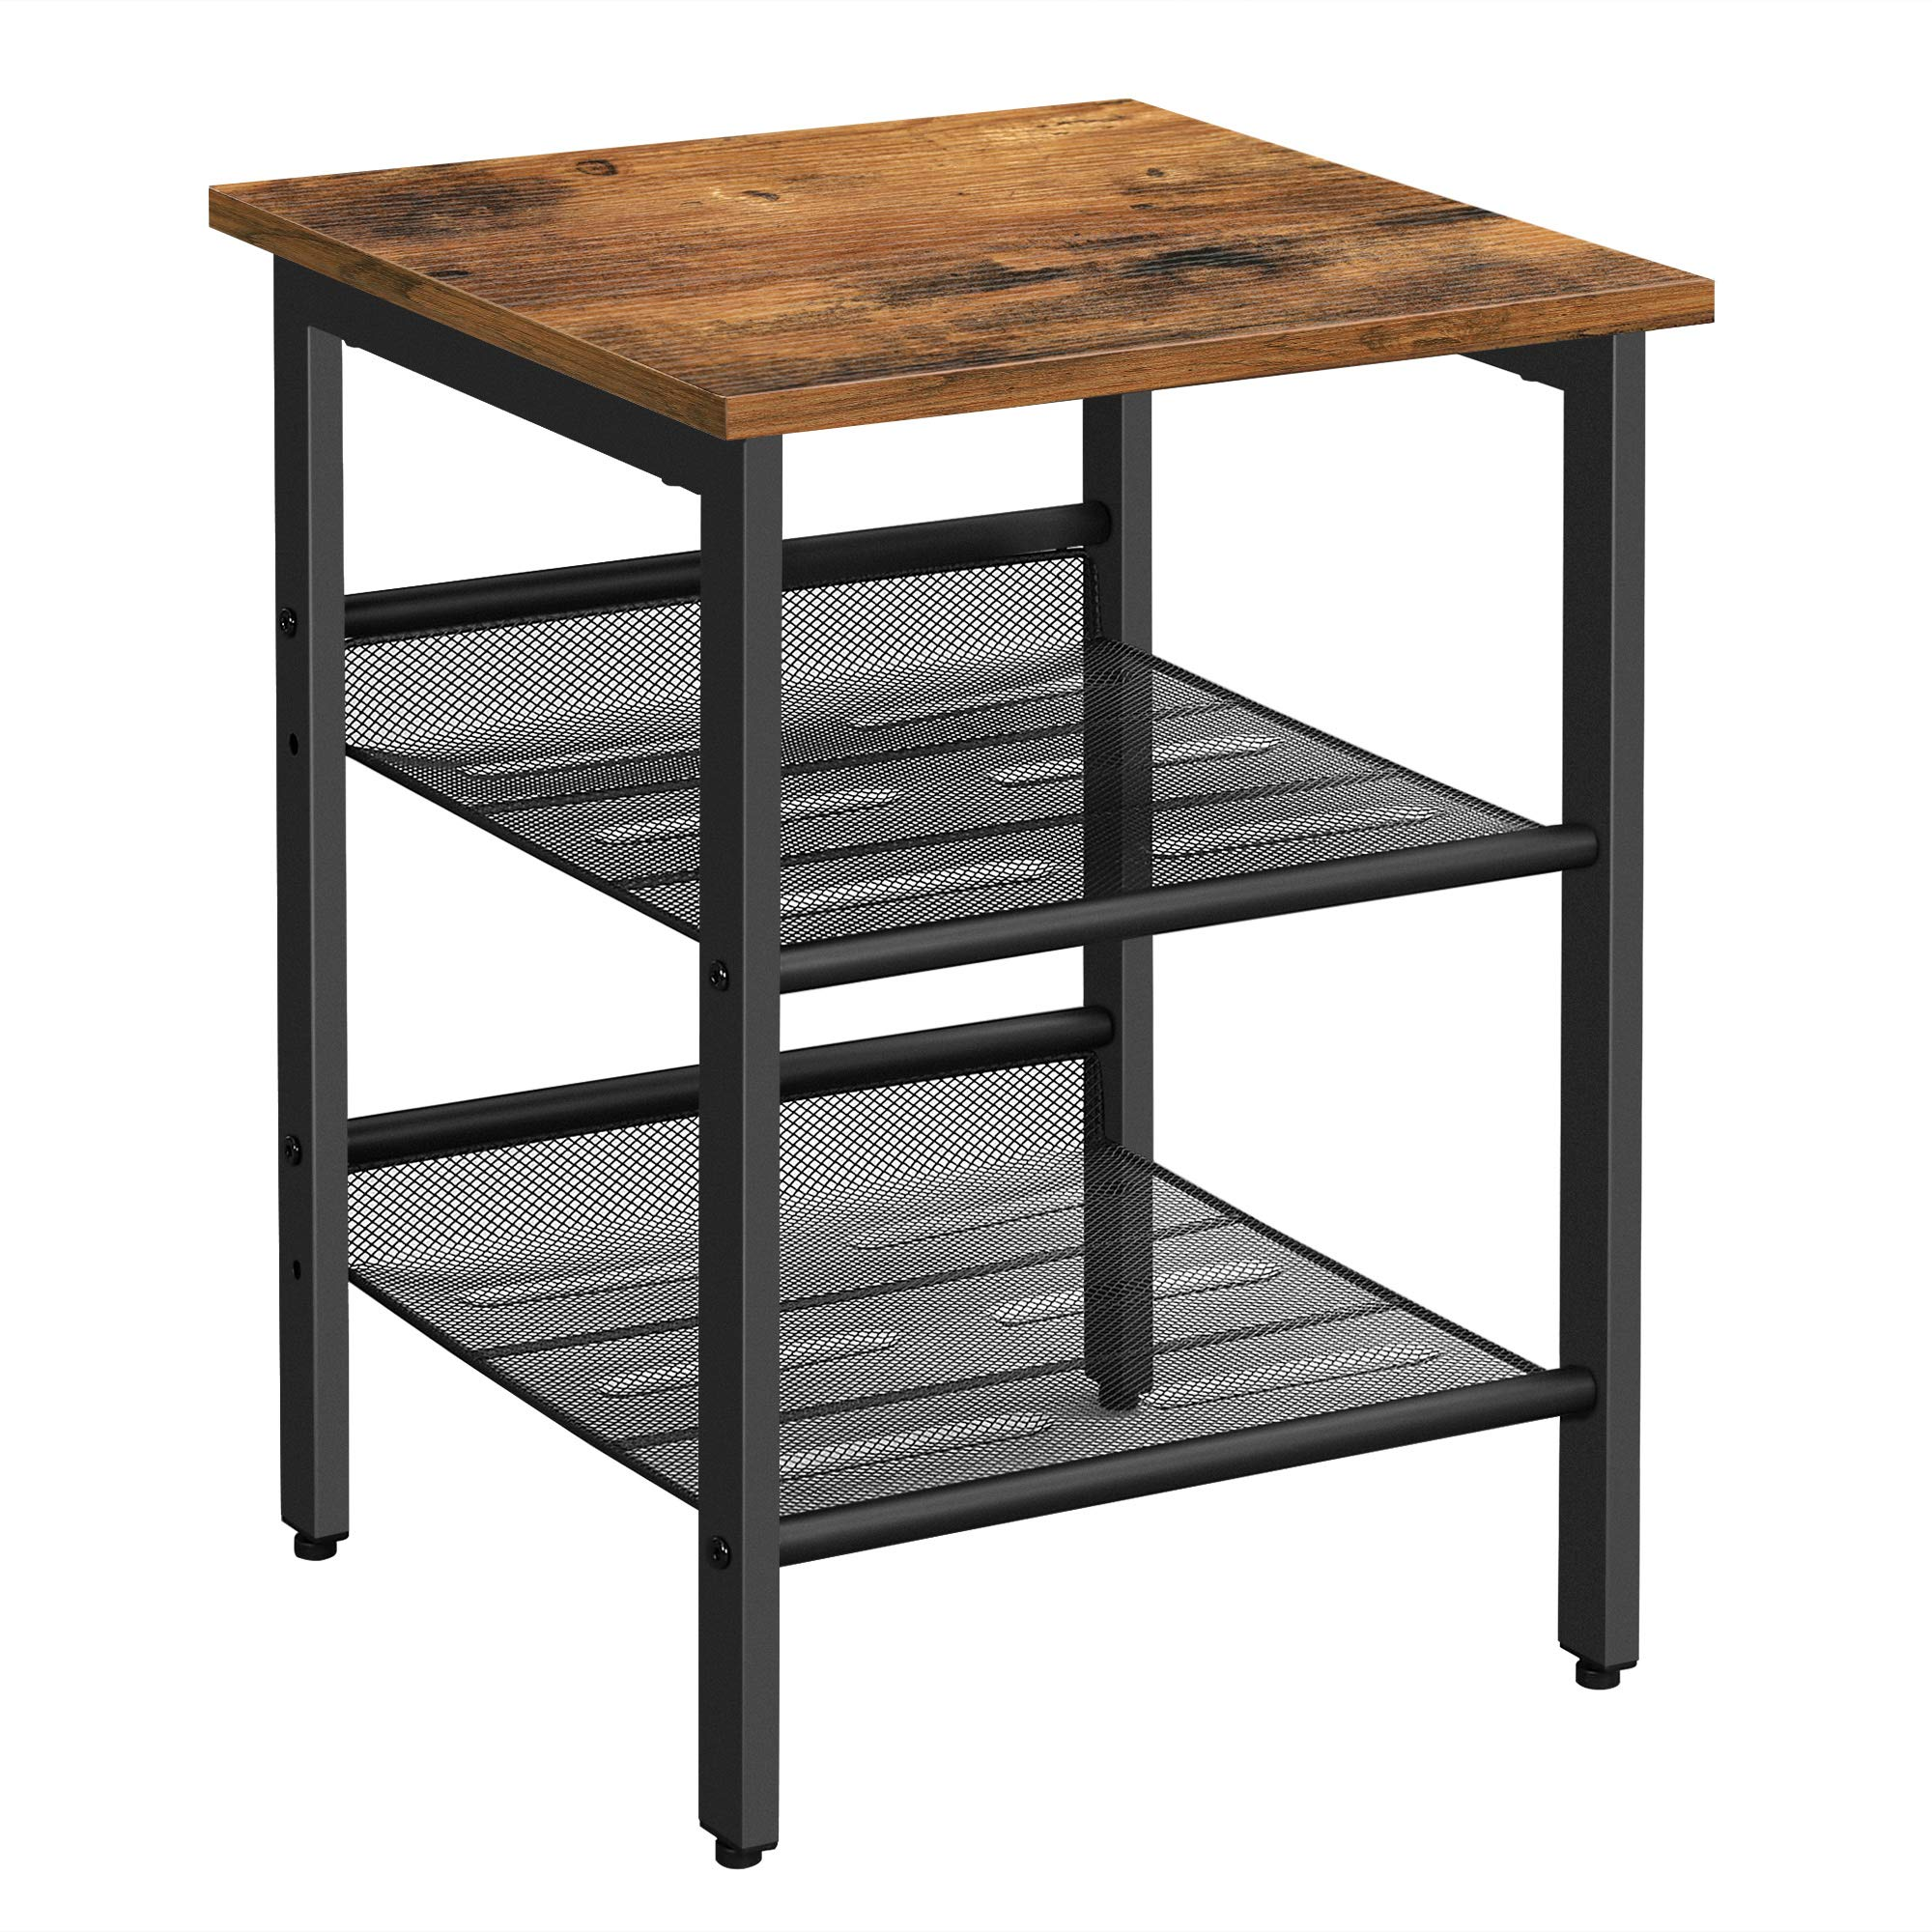 VASAGLE Side Table, Nightstand, End Table with 2 Adjustable Mesh Shelves, Easy Assembly, Industrial for Living Room, Bedroom, Stable Steel Frame, Rustic Brown and Black LET23X